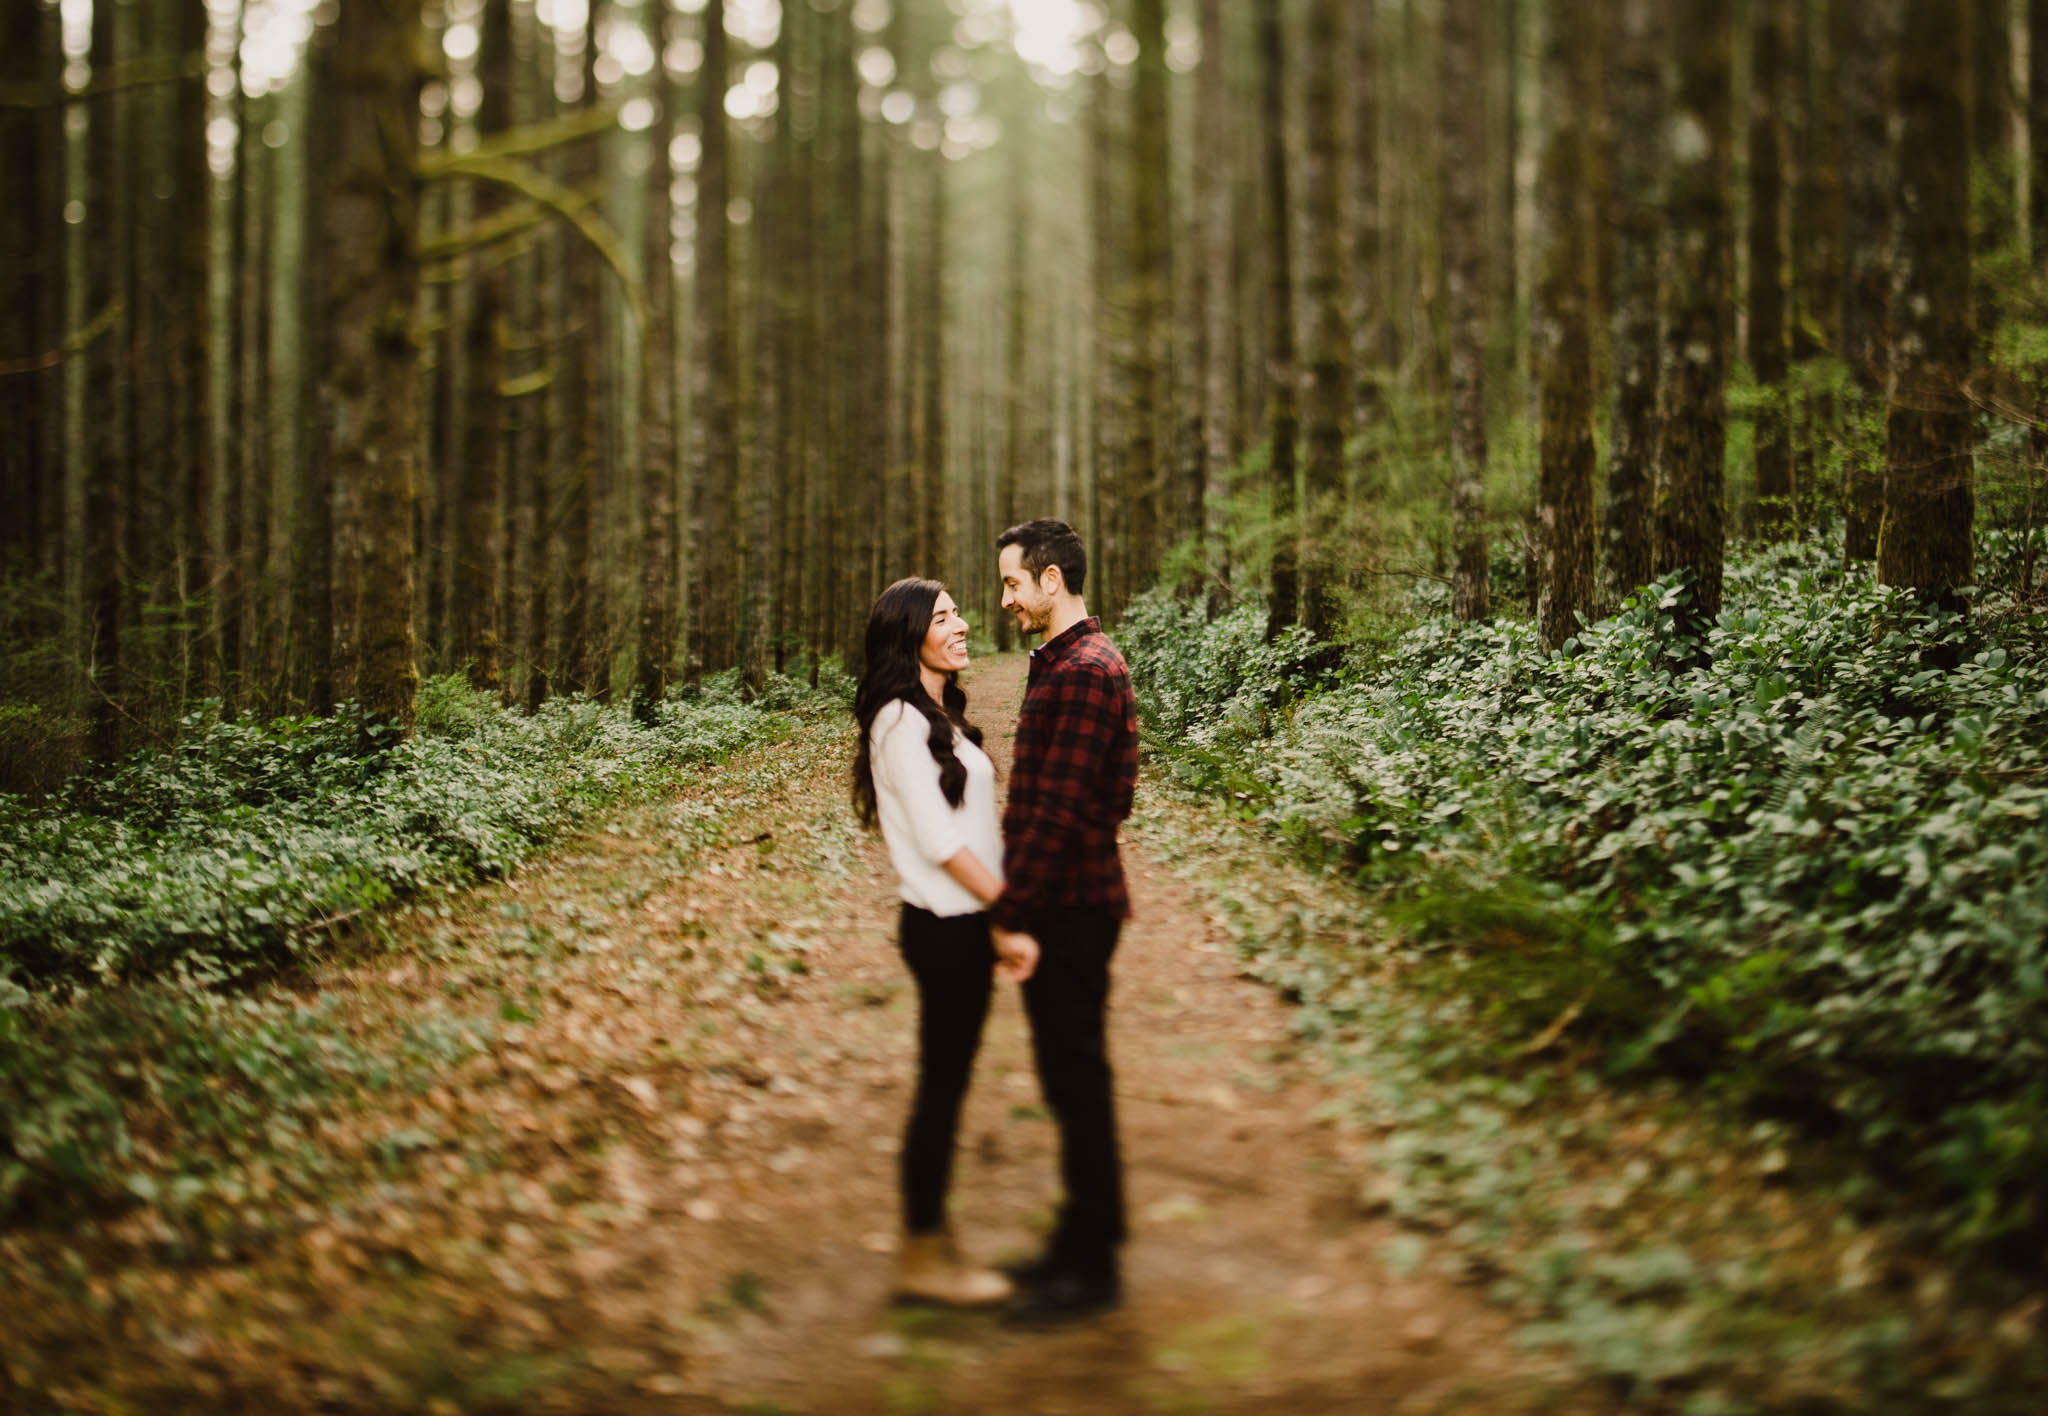 ©Isaiah-&-Taylor-Photography---Rattlesnake-Ledge-Trail-Engagement,-Seattle-Washington-006.jpg